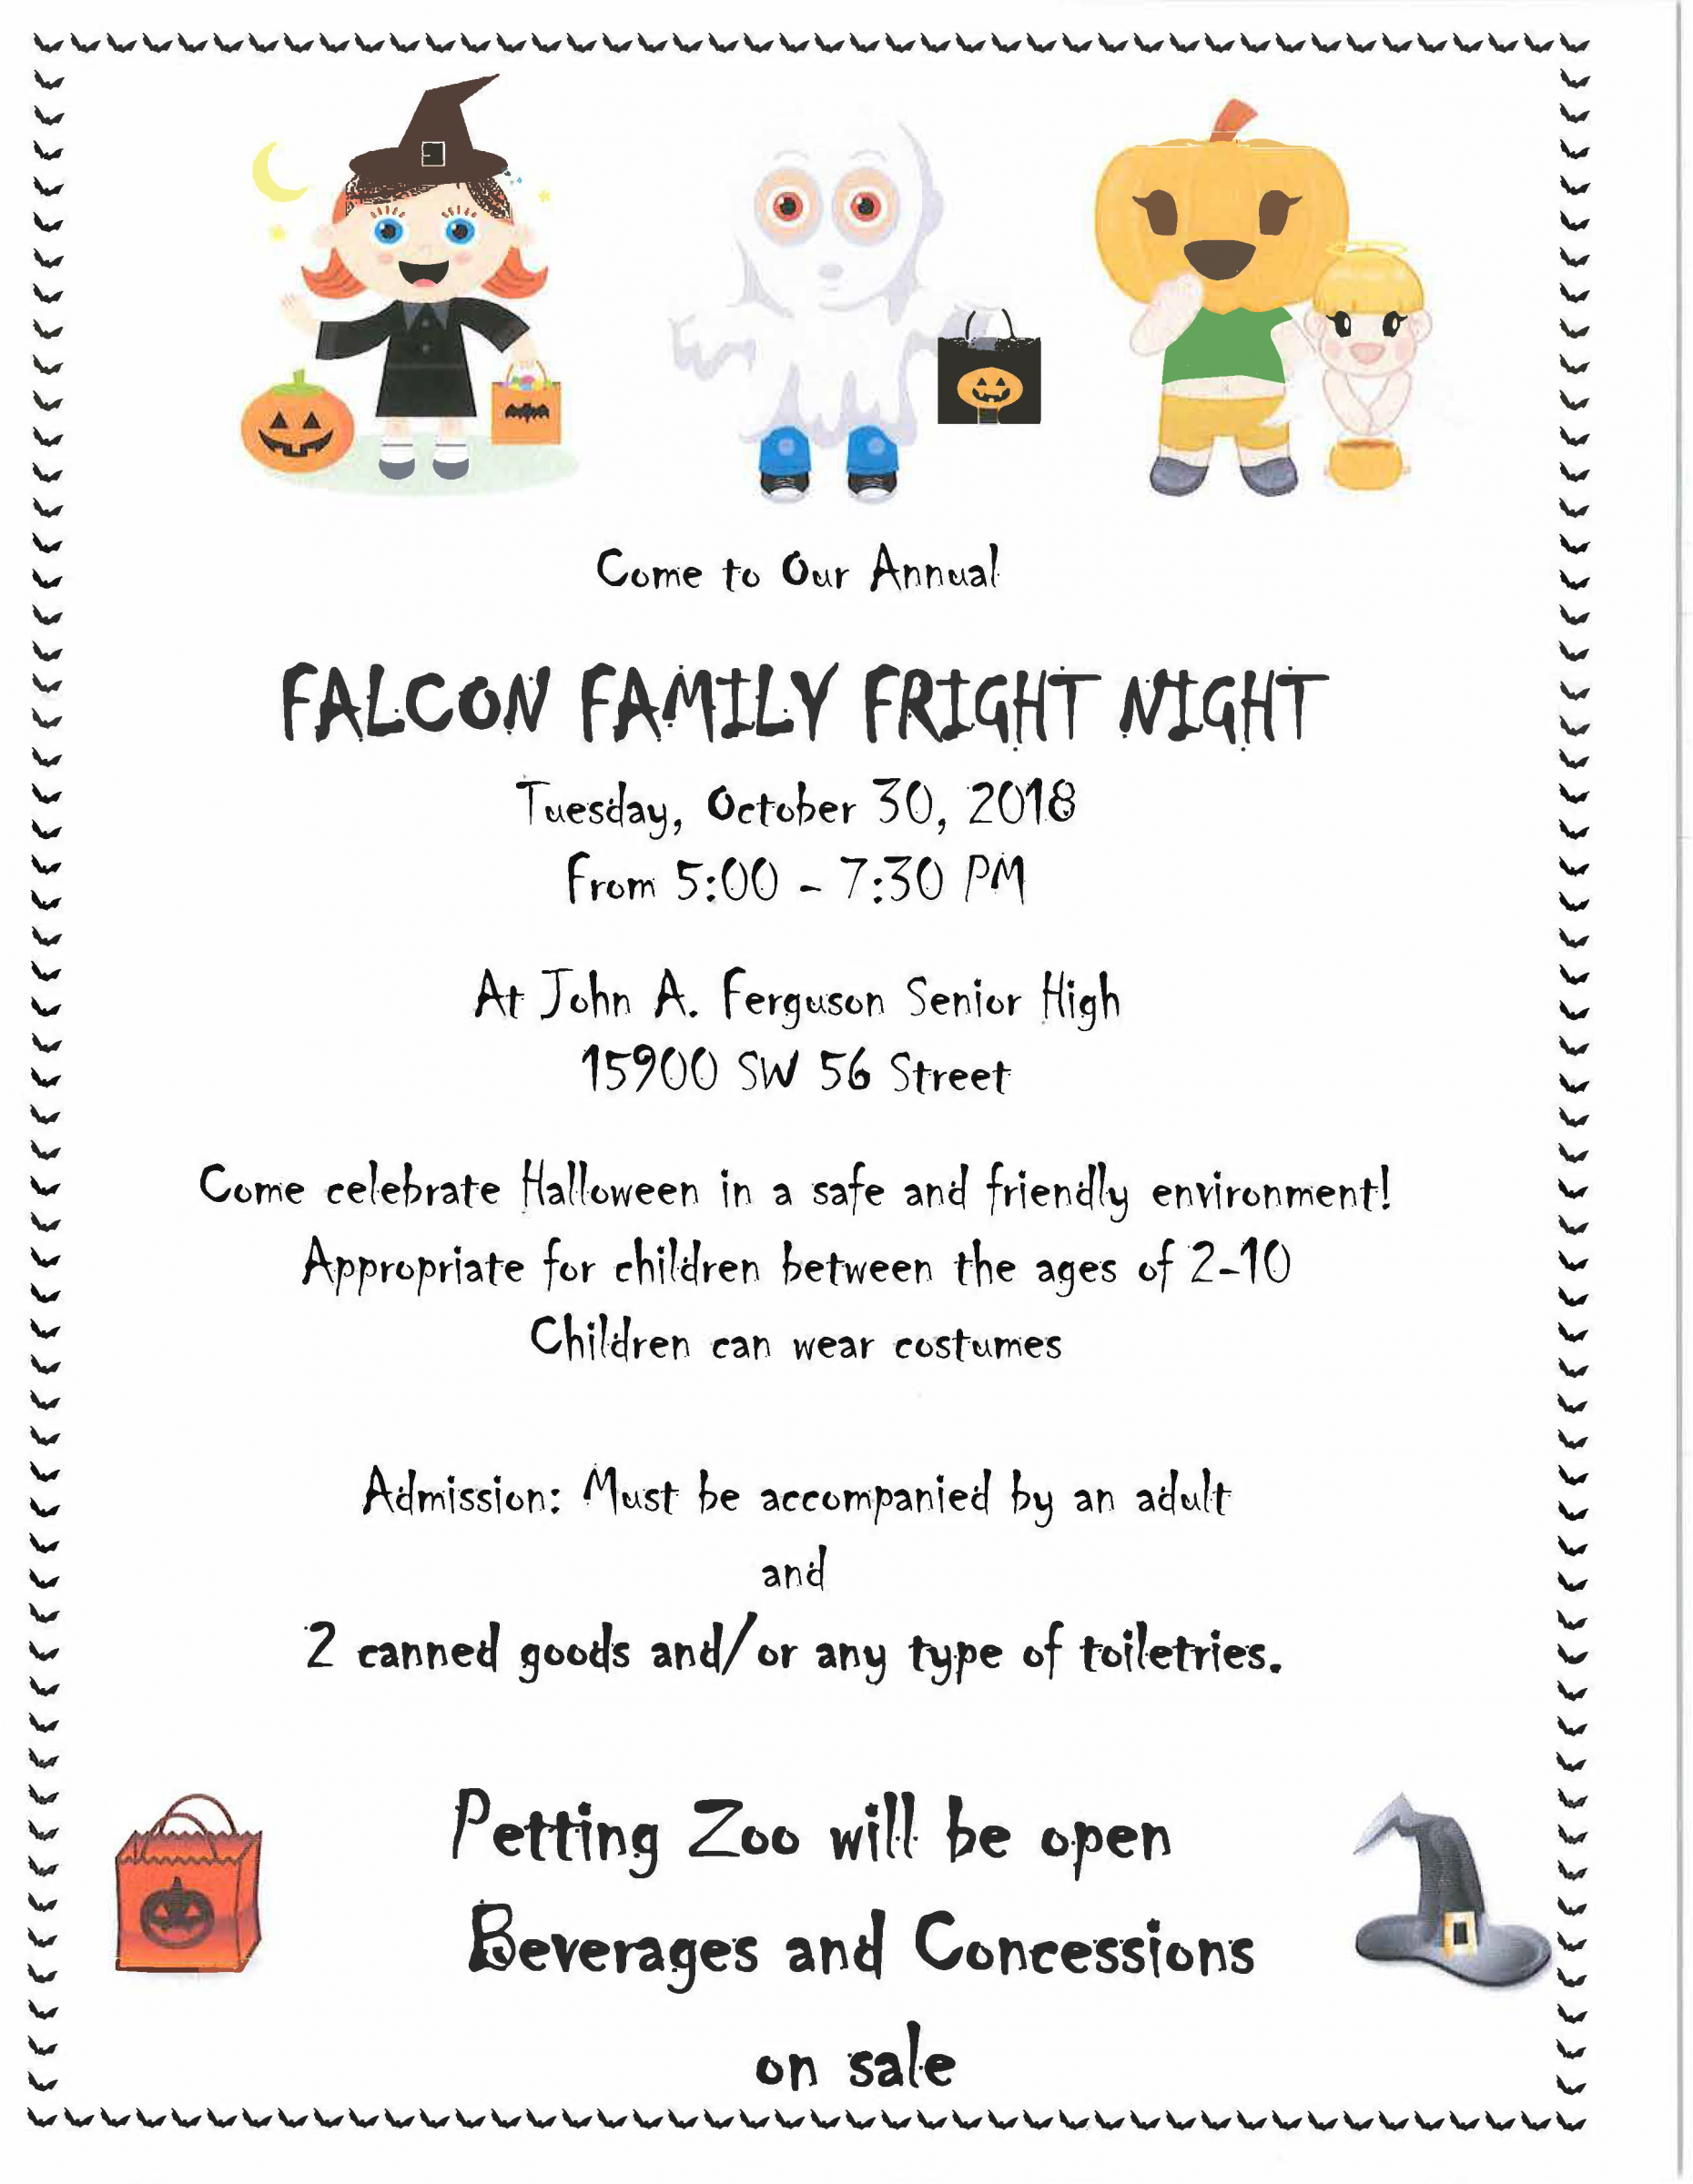 Falcon Family Fright Night @ John A. Ferguson Senior High